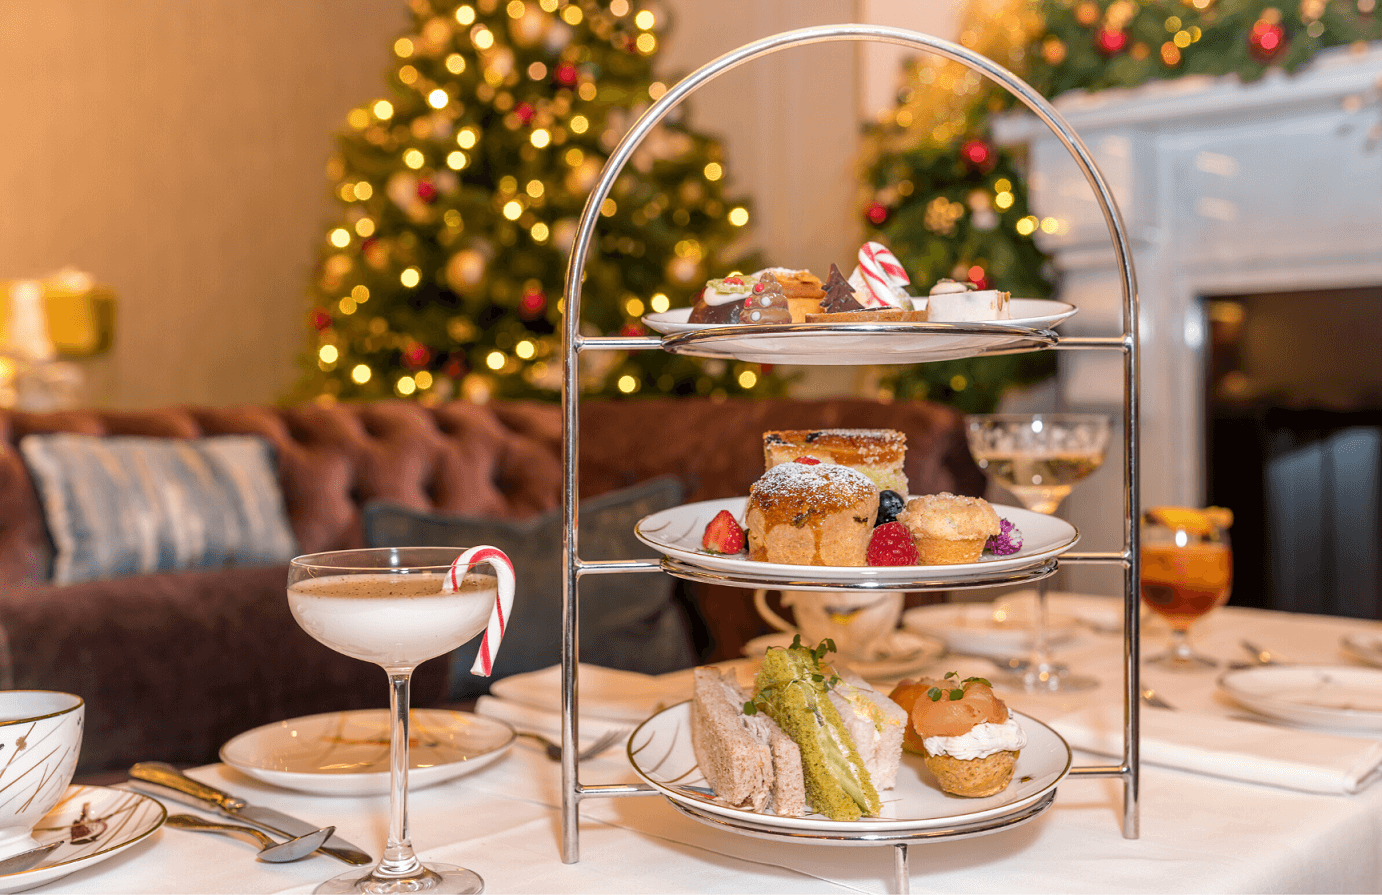 festive afternoon tea with festive cocktails at the atrium lounge